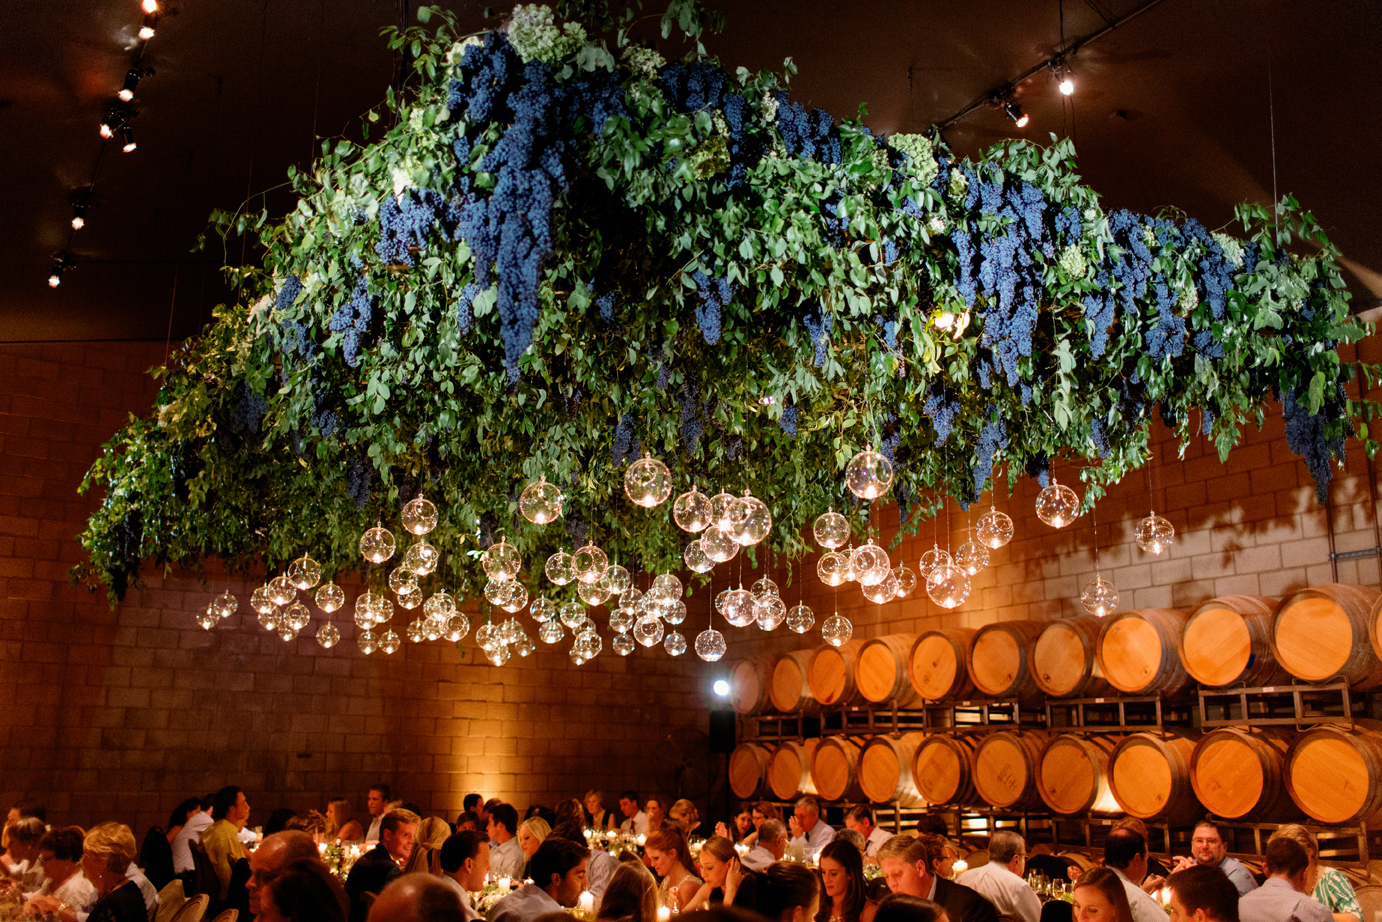 lighting fixture of grapes and candles